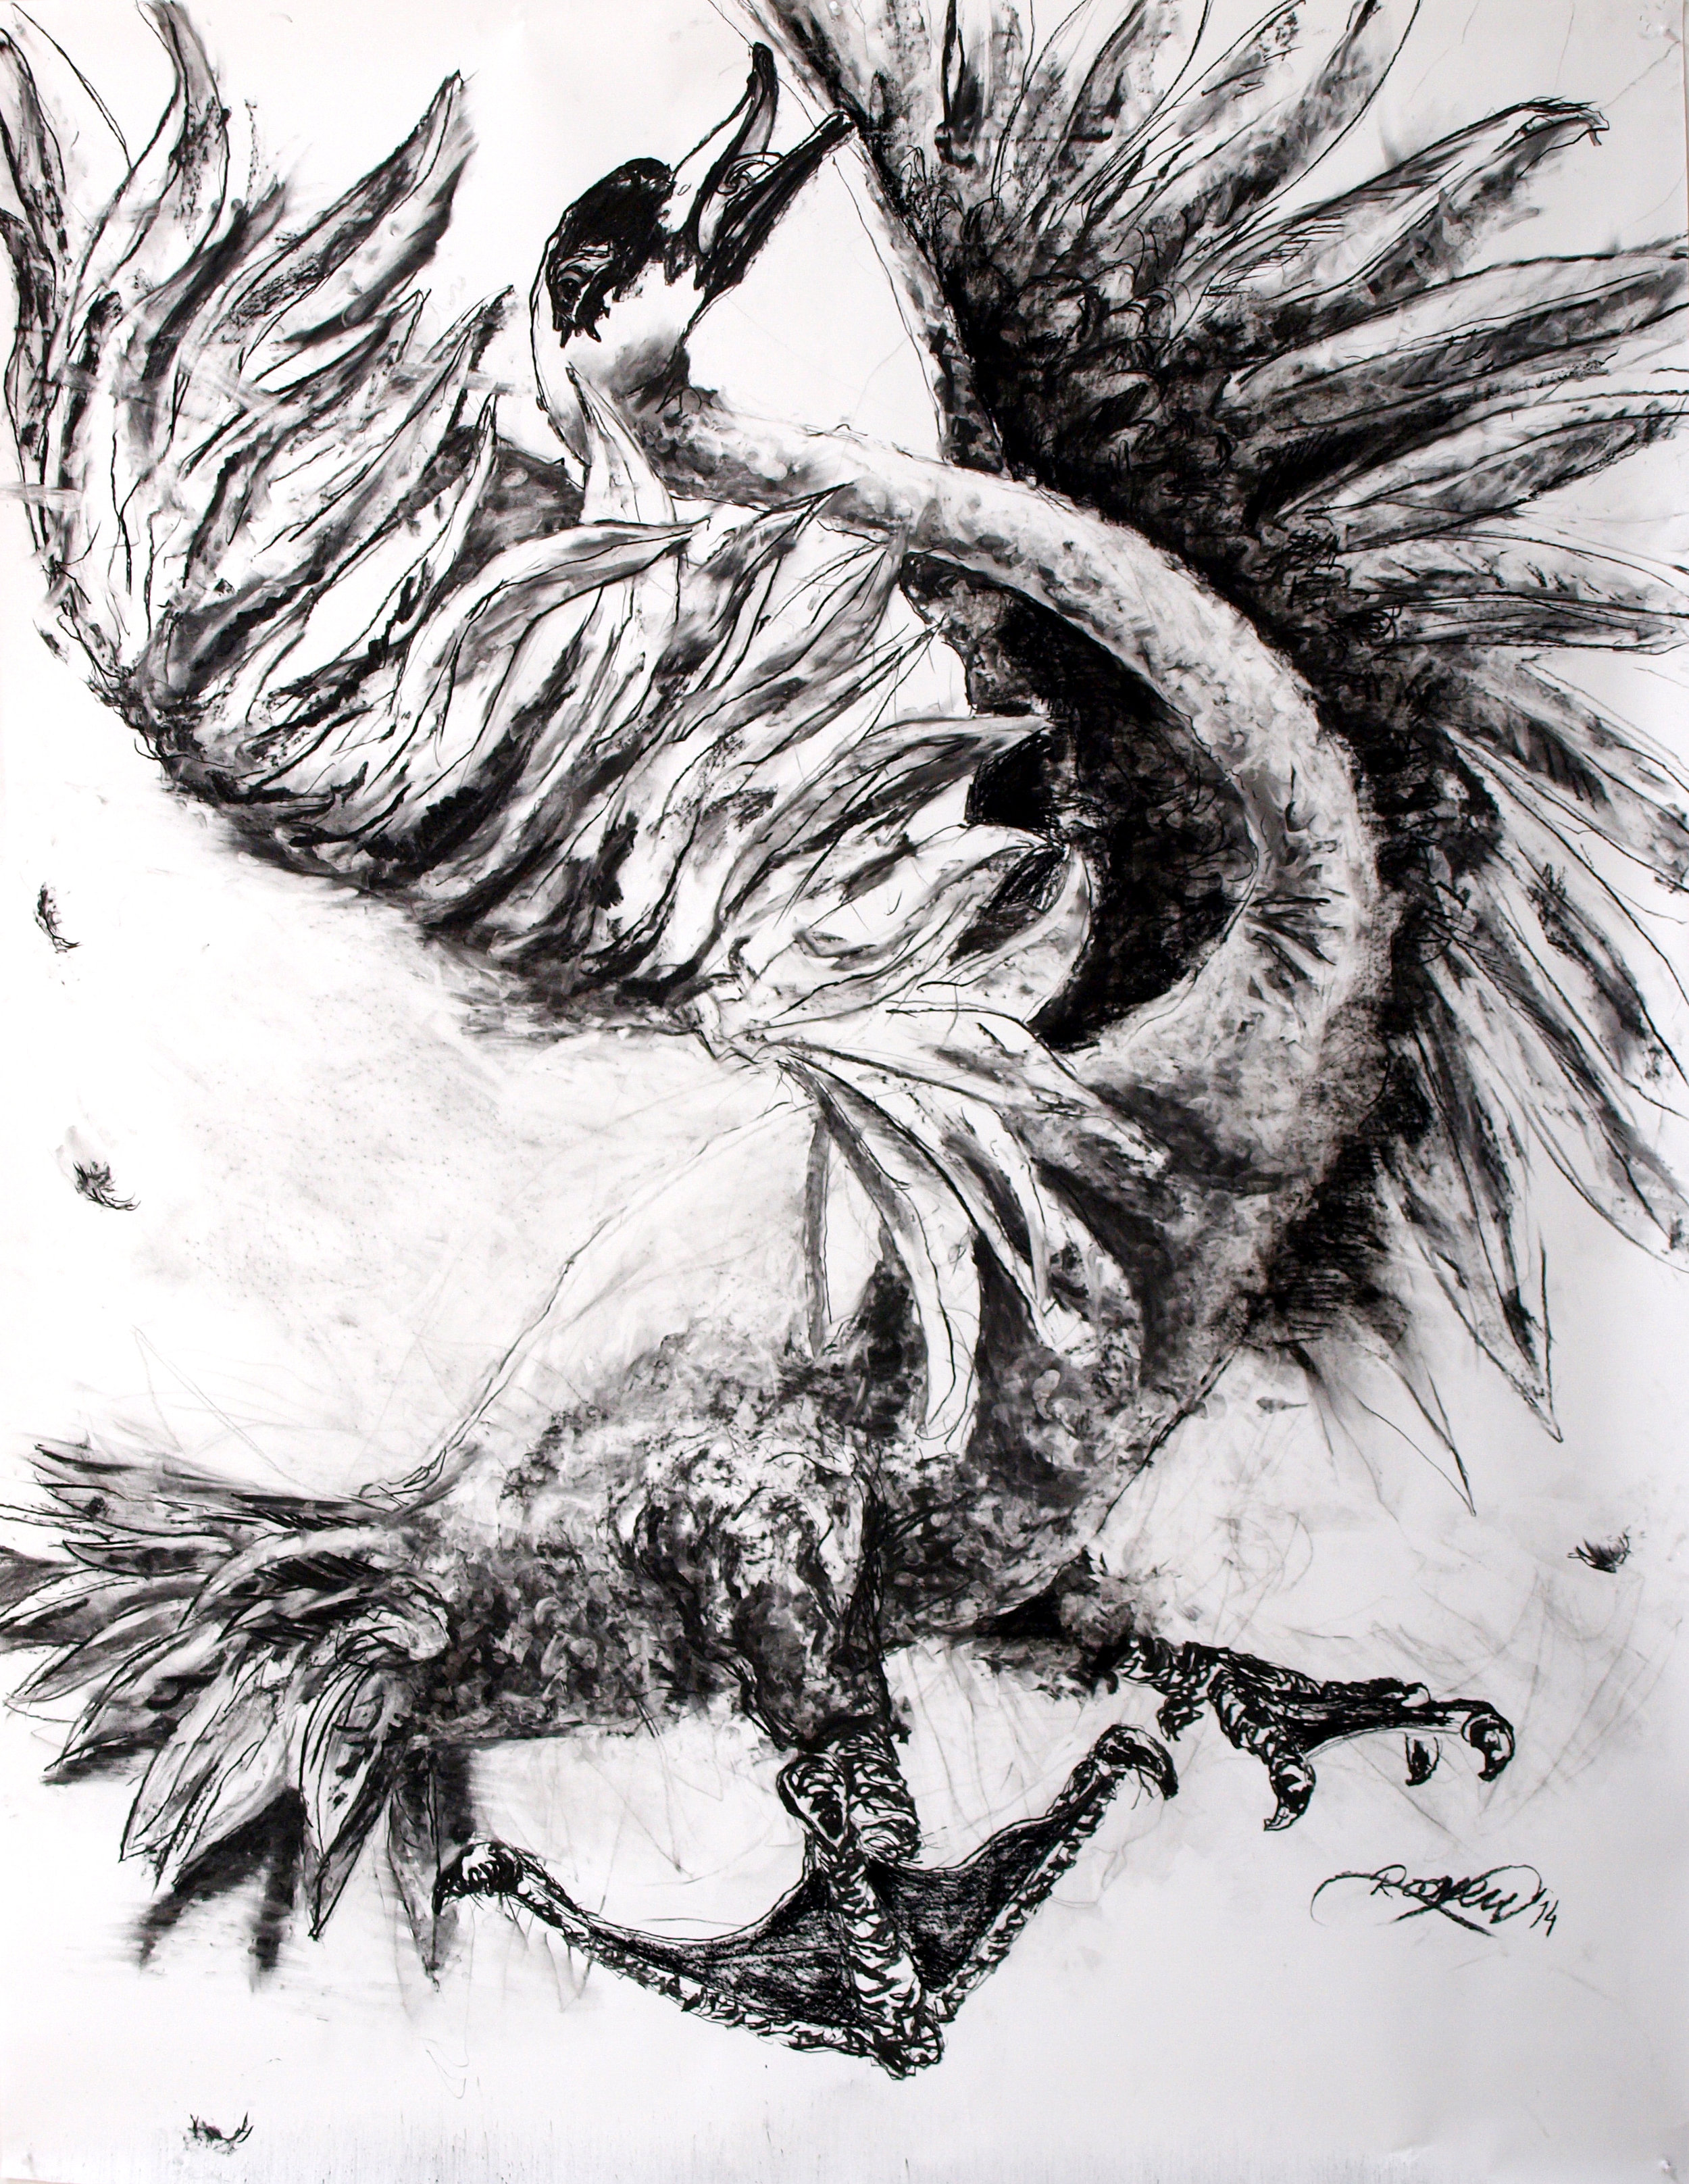 Sketch for Swan 193,5x150 cm charcoal on paper 2014